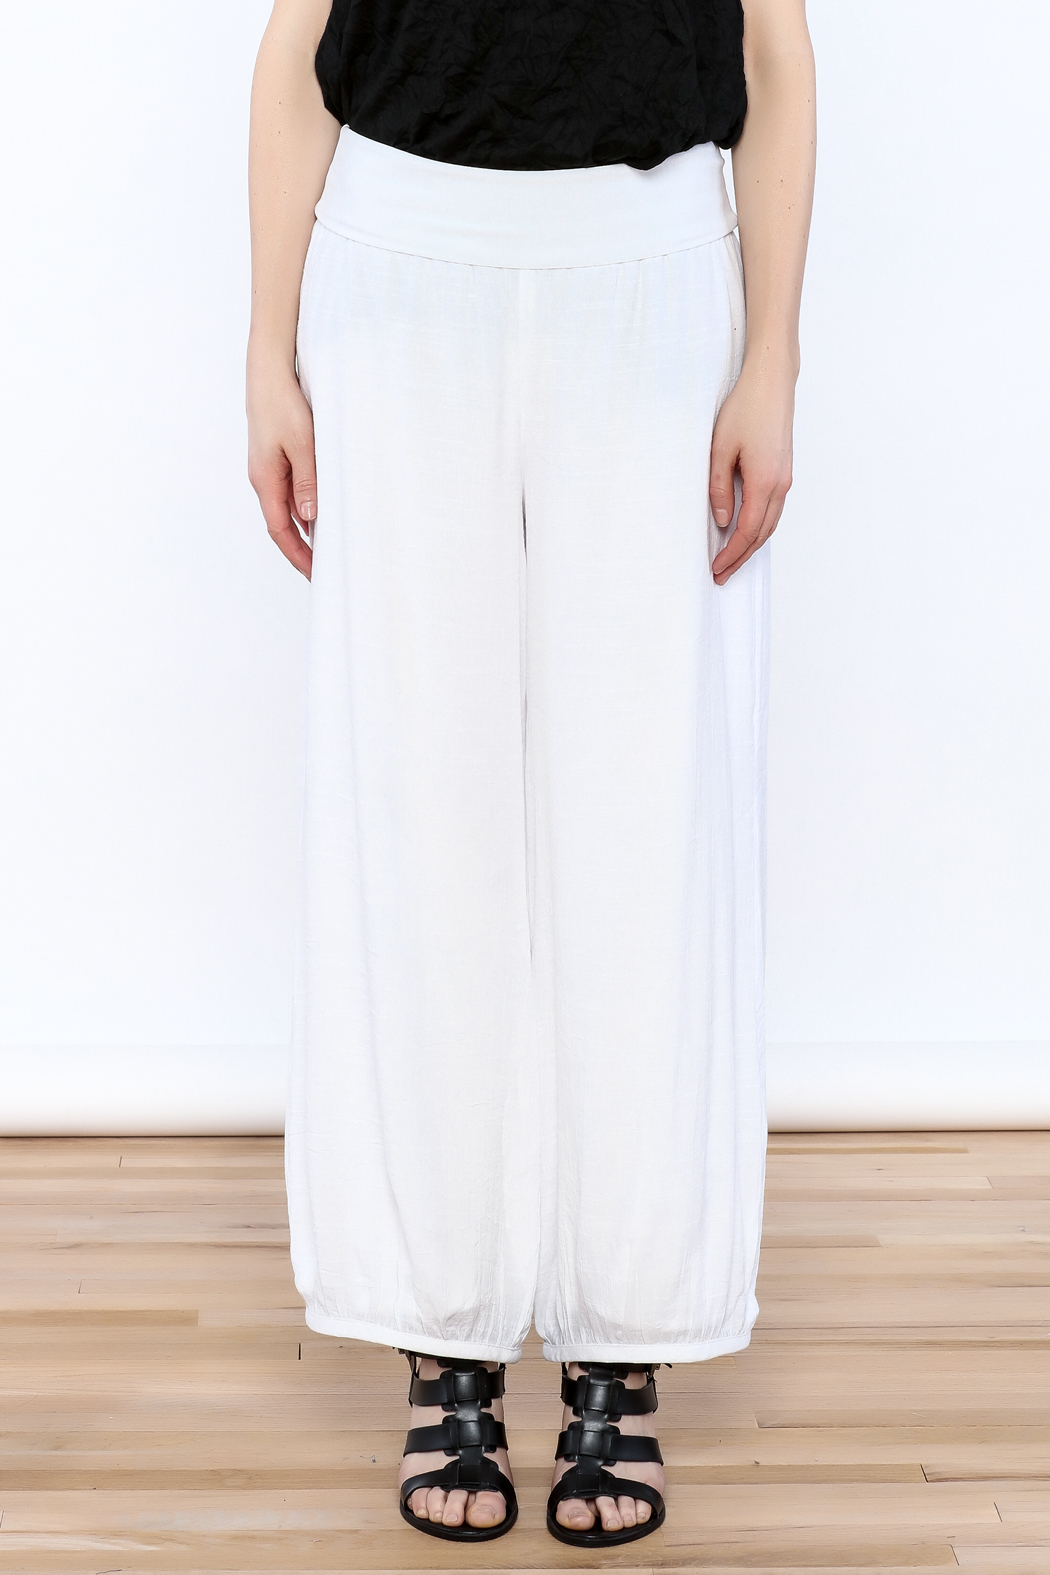 Joseph Ribkoff White Palazzo Pants - Side Cropped Image